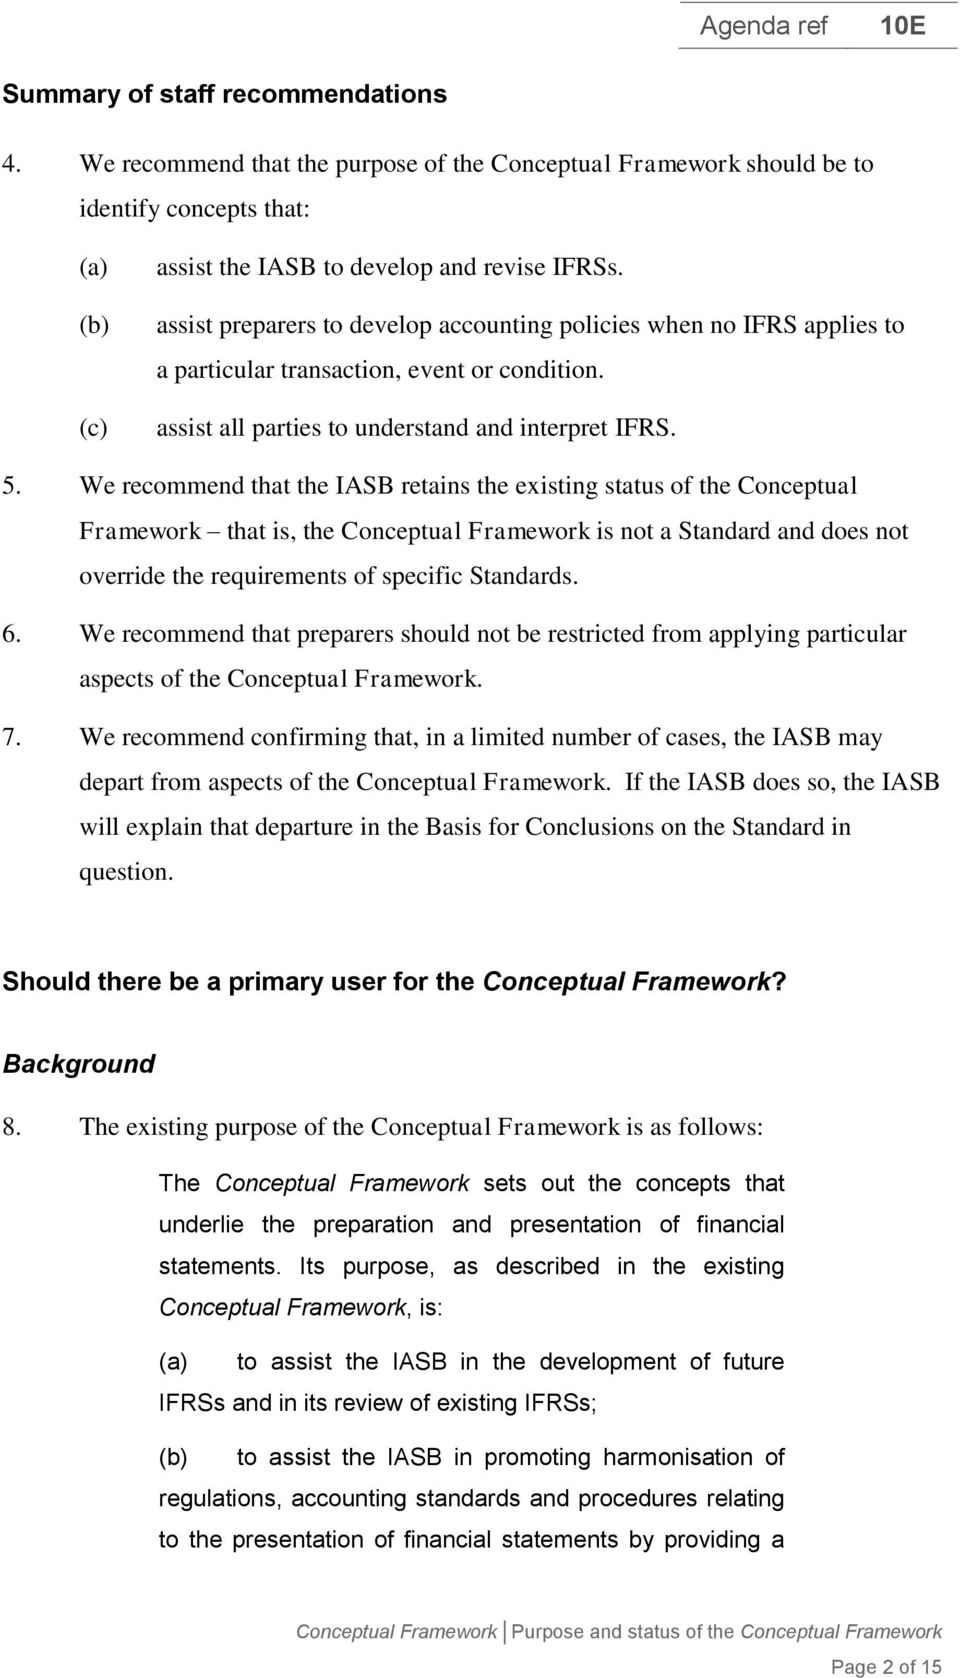 We recommend that the IASB retains the existing status of the Conceptual Framework that is, the Conceptual Framework is not a Standard and does not override the requirements of specific Standards. 6.